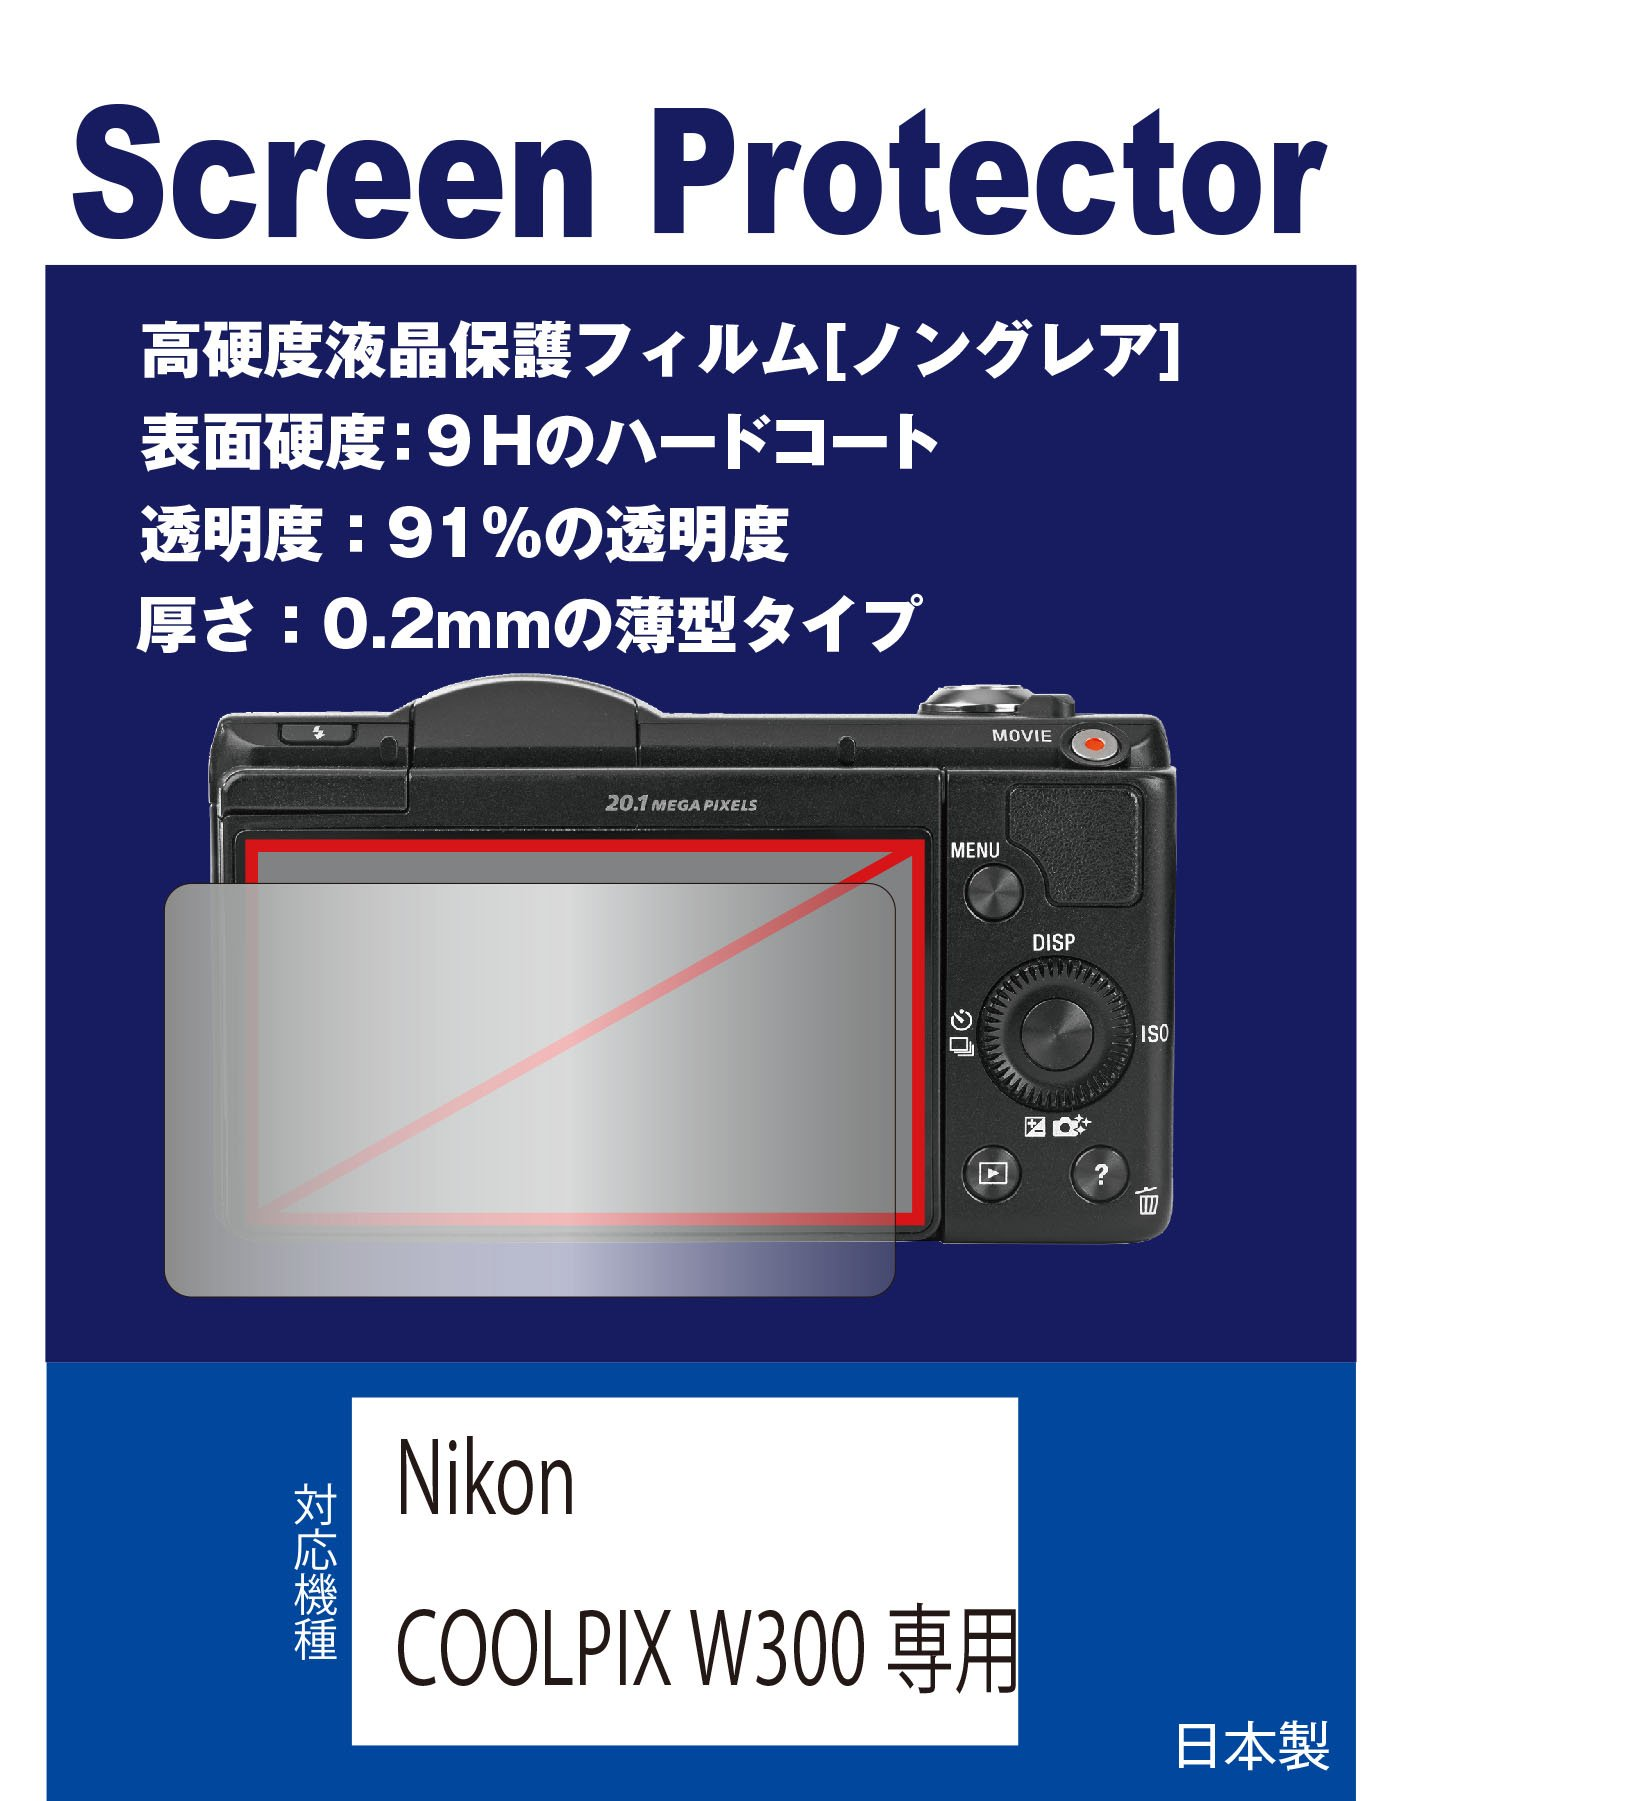 [해외]【 고 경도 (9H) 반사 방지 필름 】 Nikon COOLPIX W300 전용 액정 보호 필름 (고 경도 필름 매트) / [High hardness (9h) antireflection film] Nikon COOLPIX w300 Dedicated LCD protective film (high hardness film mat)